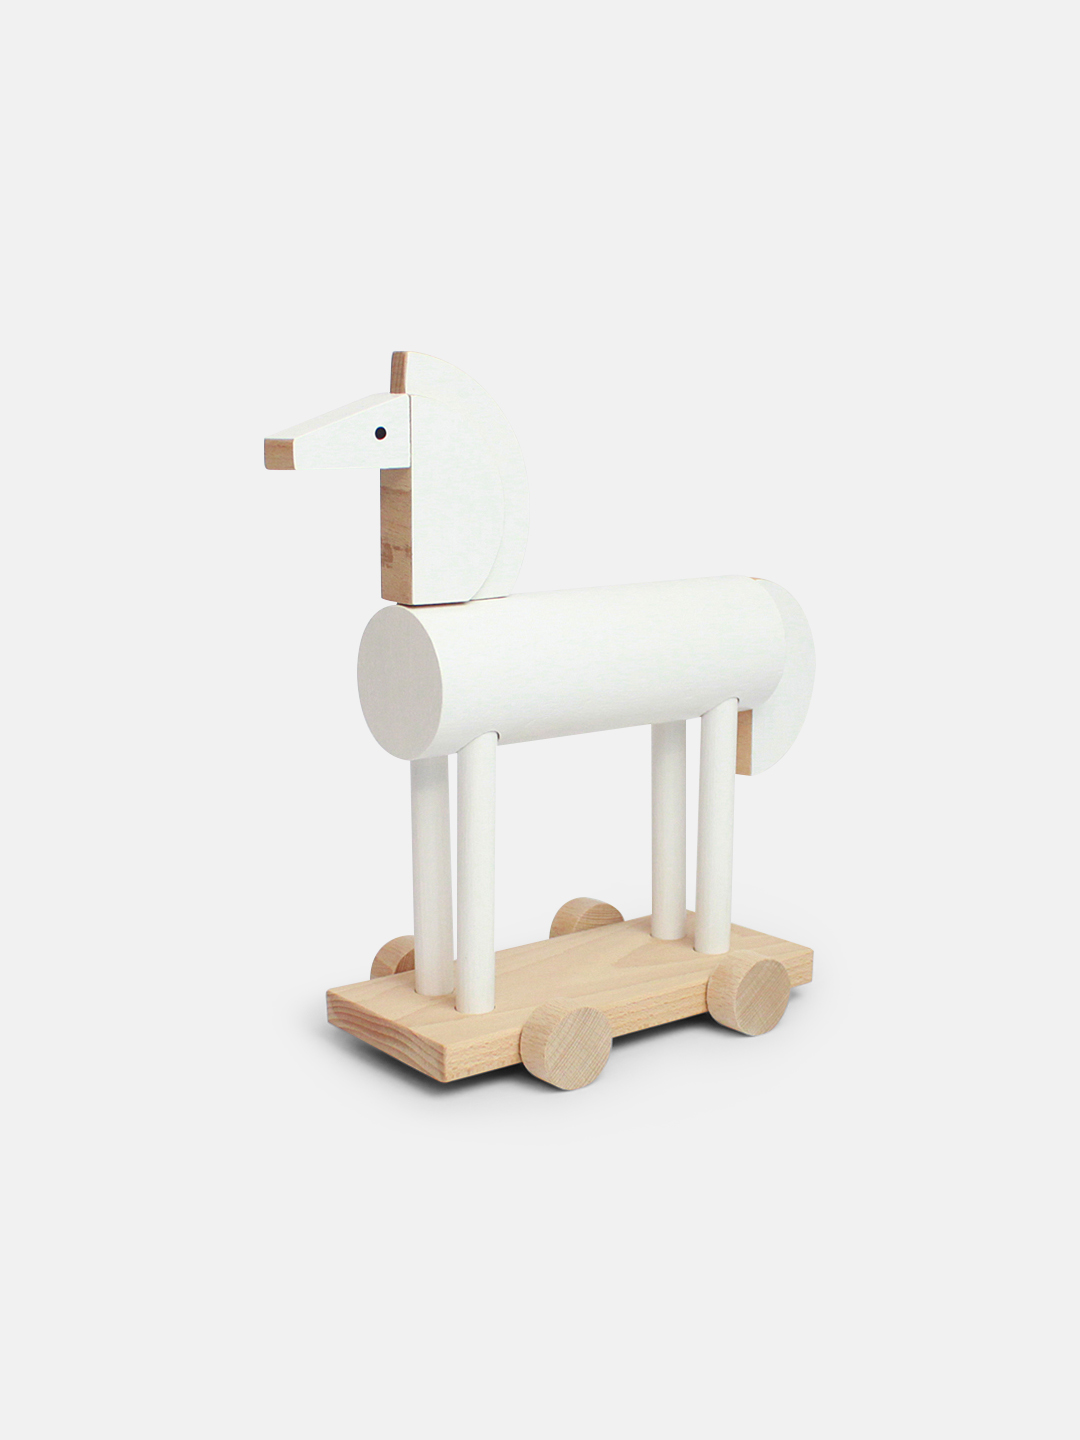 Ortus The Wooden Horse